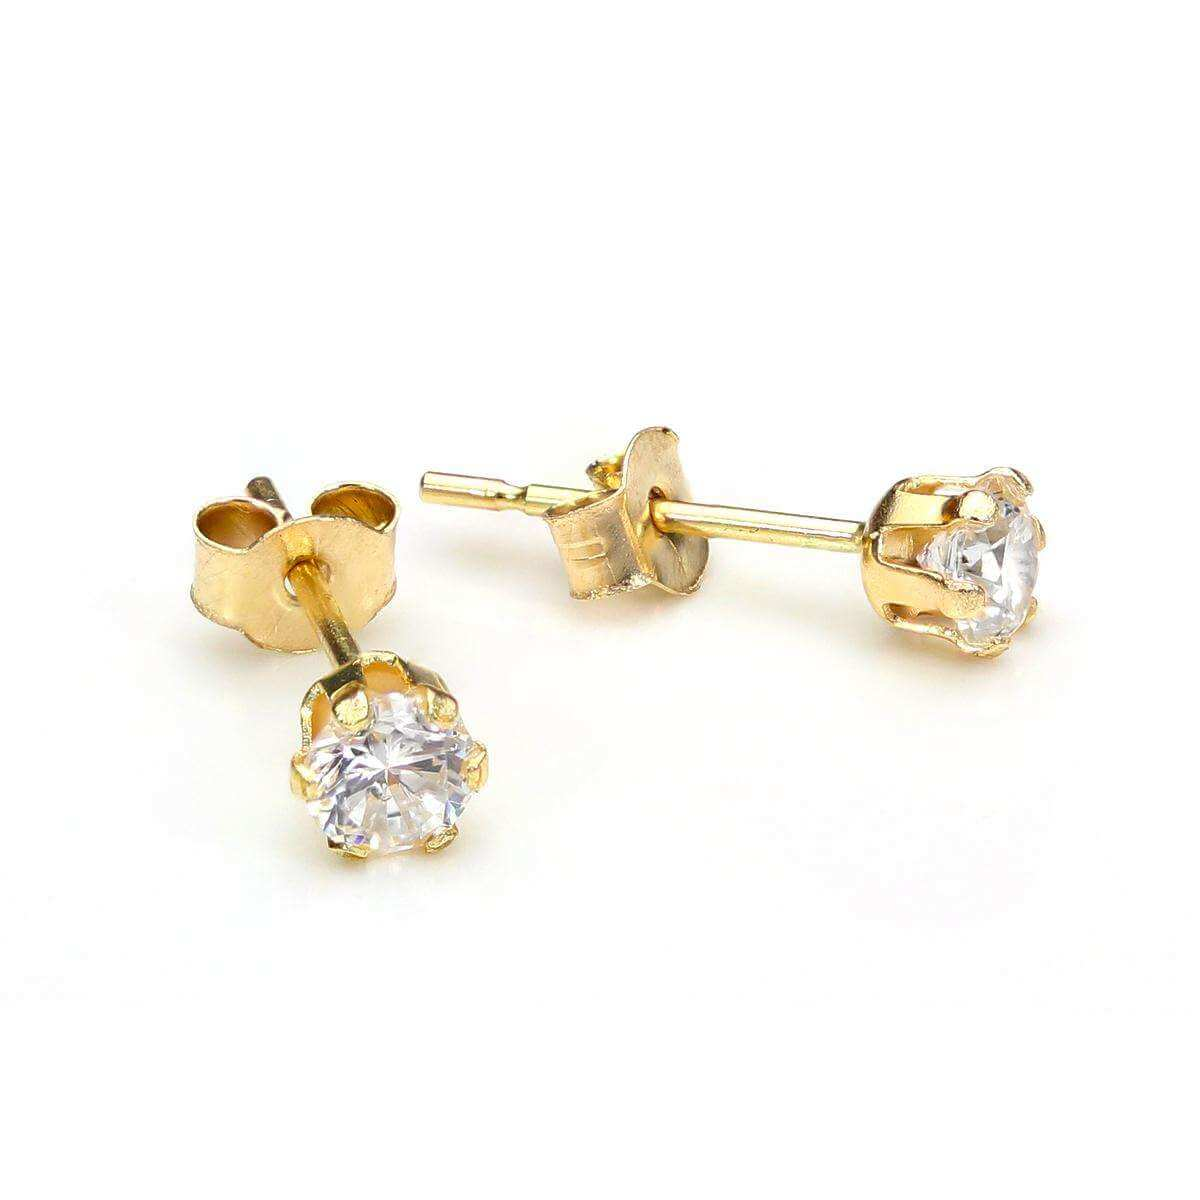 9ct yellow gold 6mm aurora borealis cz stud earrings. Gift box